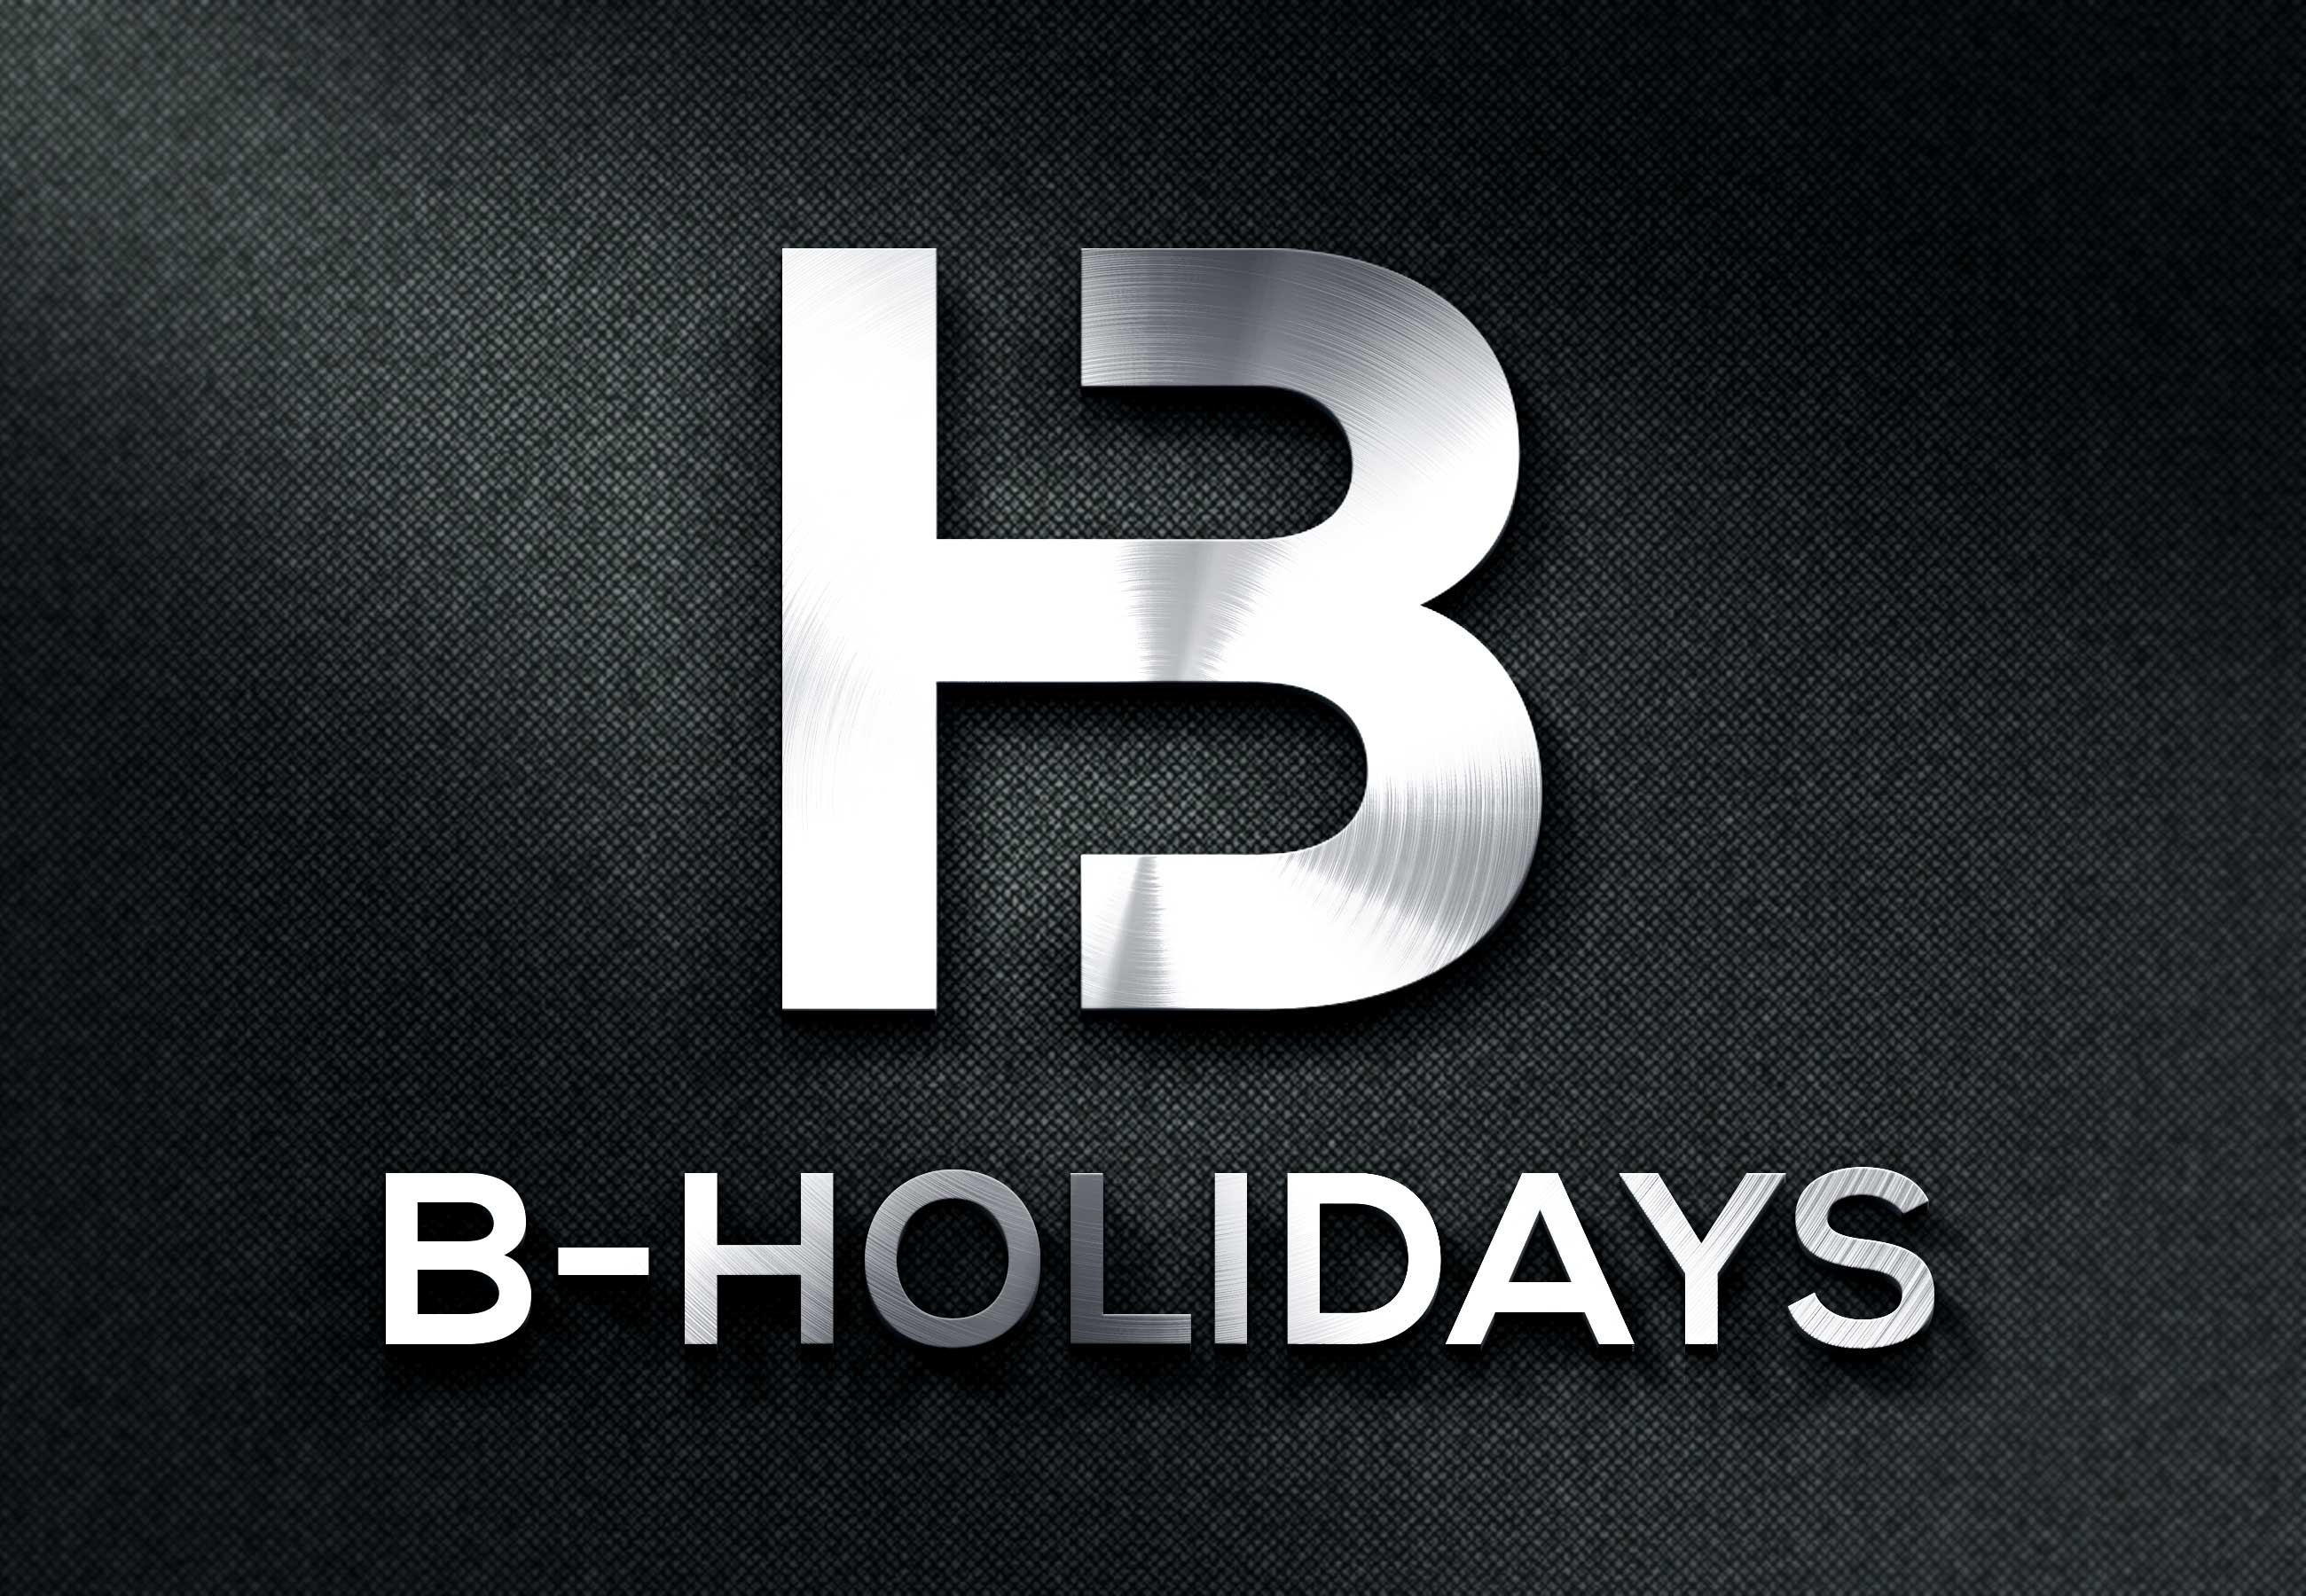 Introduction of B-Holidays